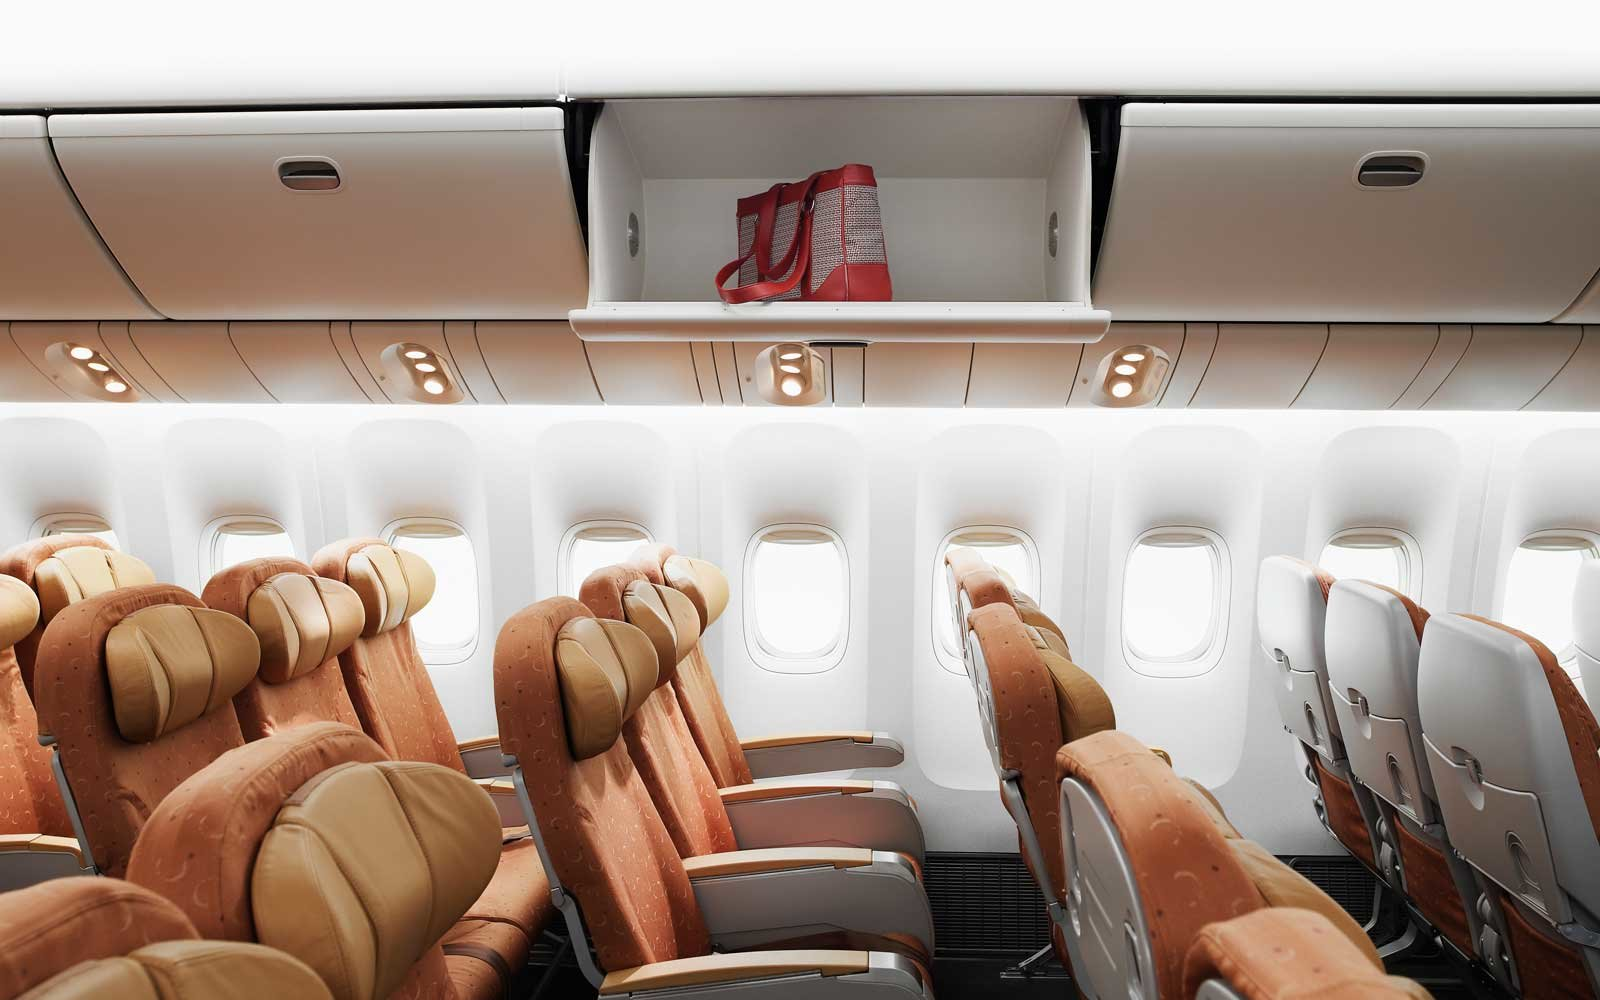 Empty airplane interior, bag left in overhead bin, side view